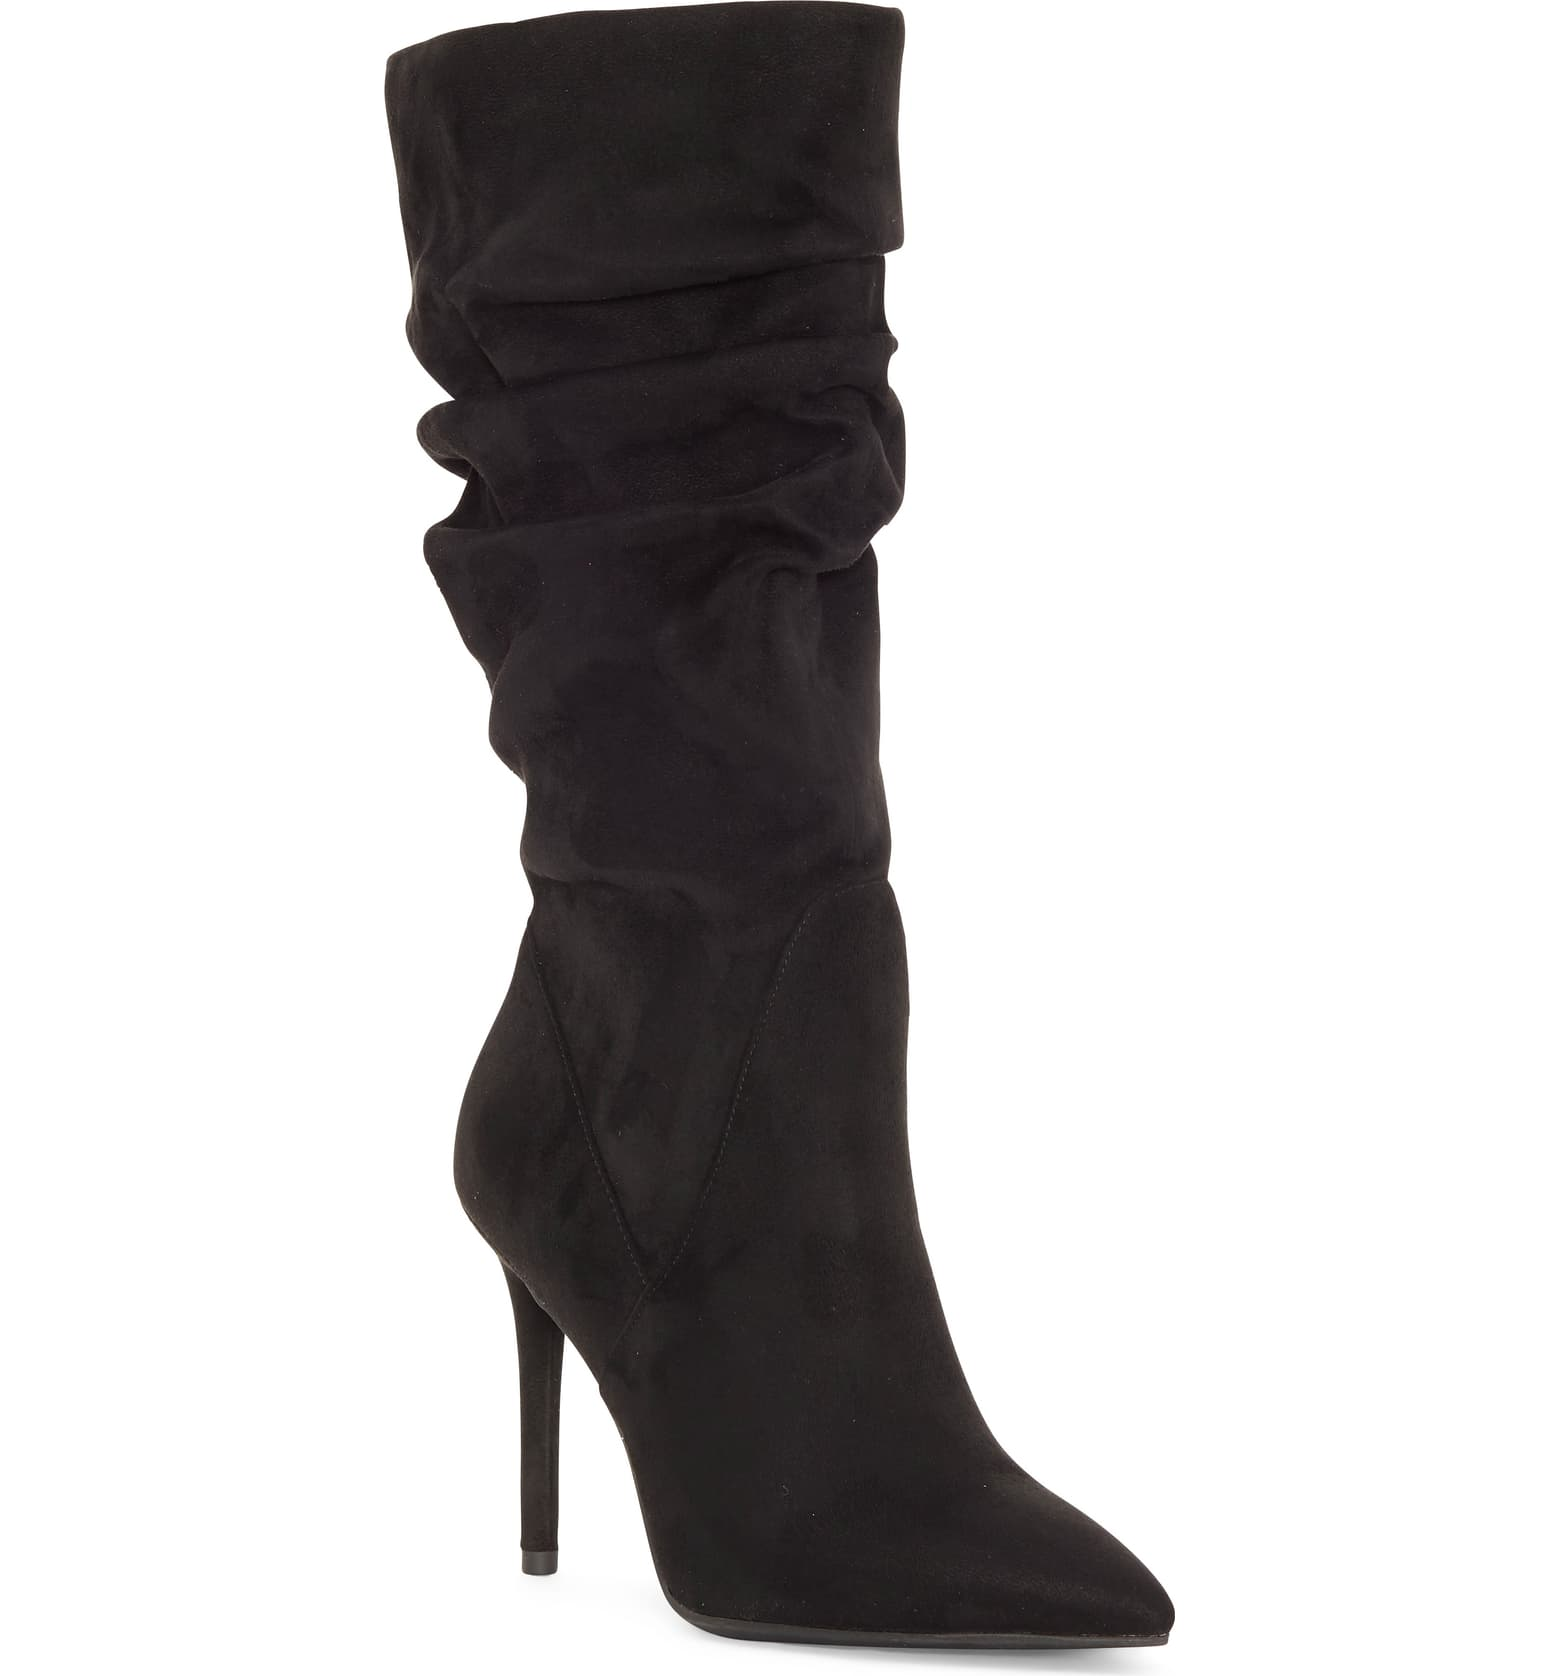 Slouchy mid calf boots are trending